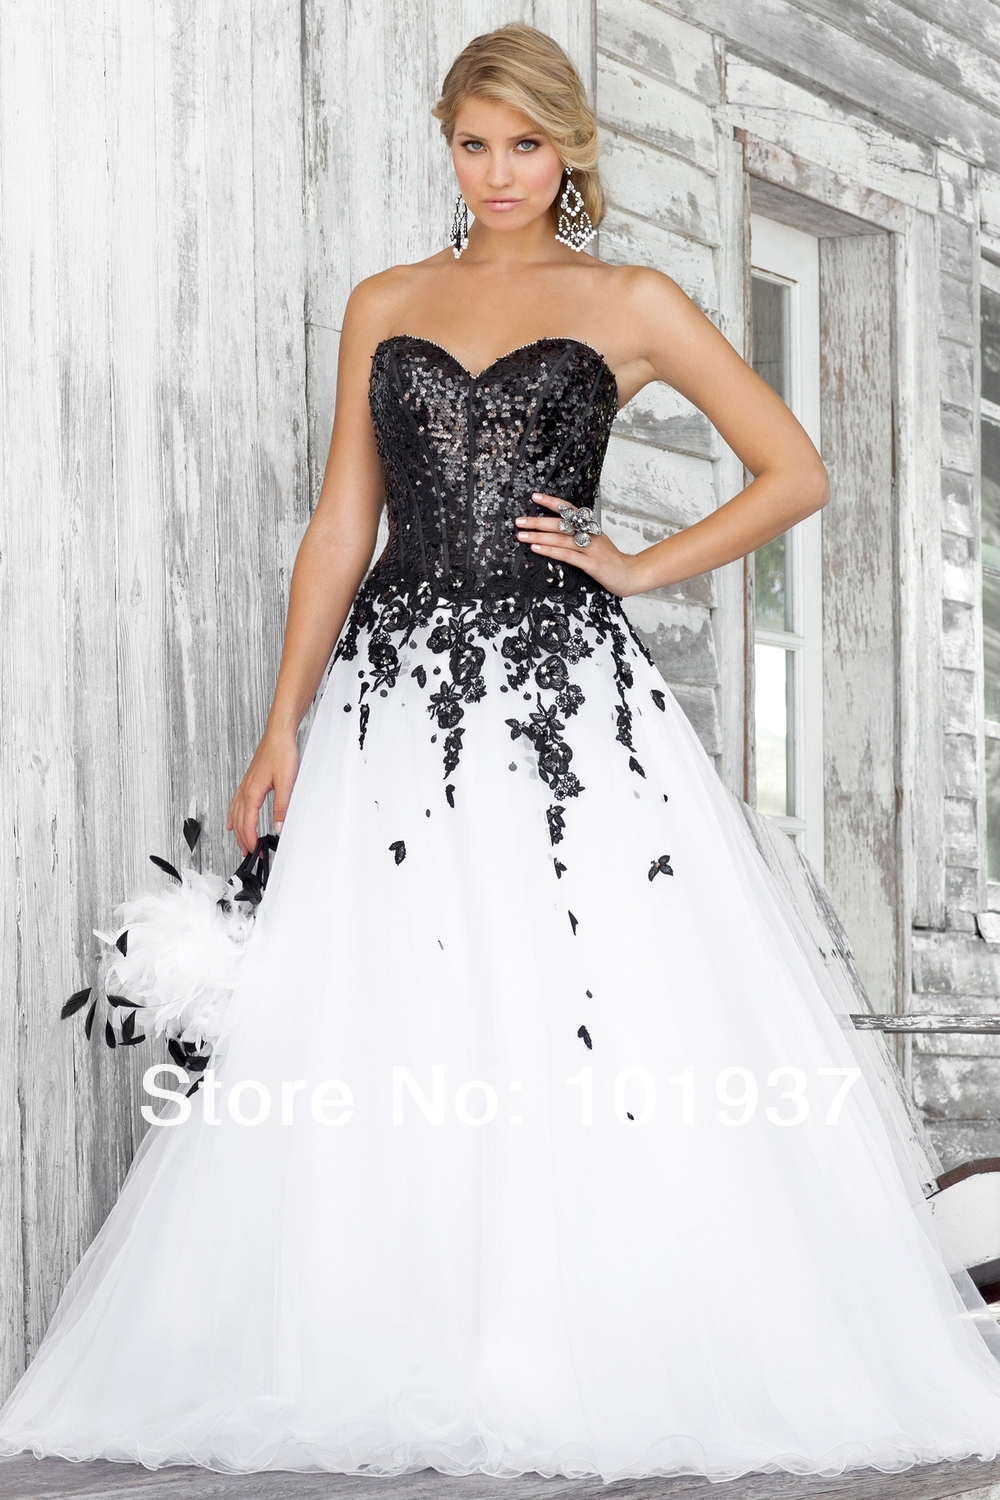 White Corset Prom Dresses Promotion-Shop for Promotional White ...